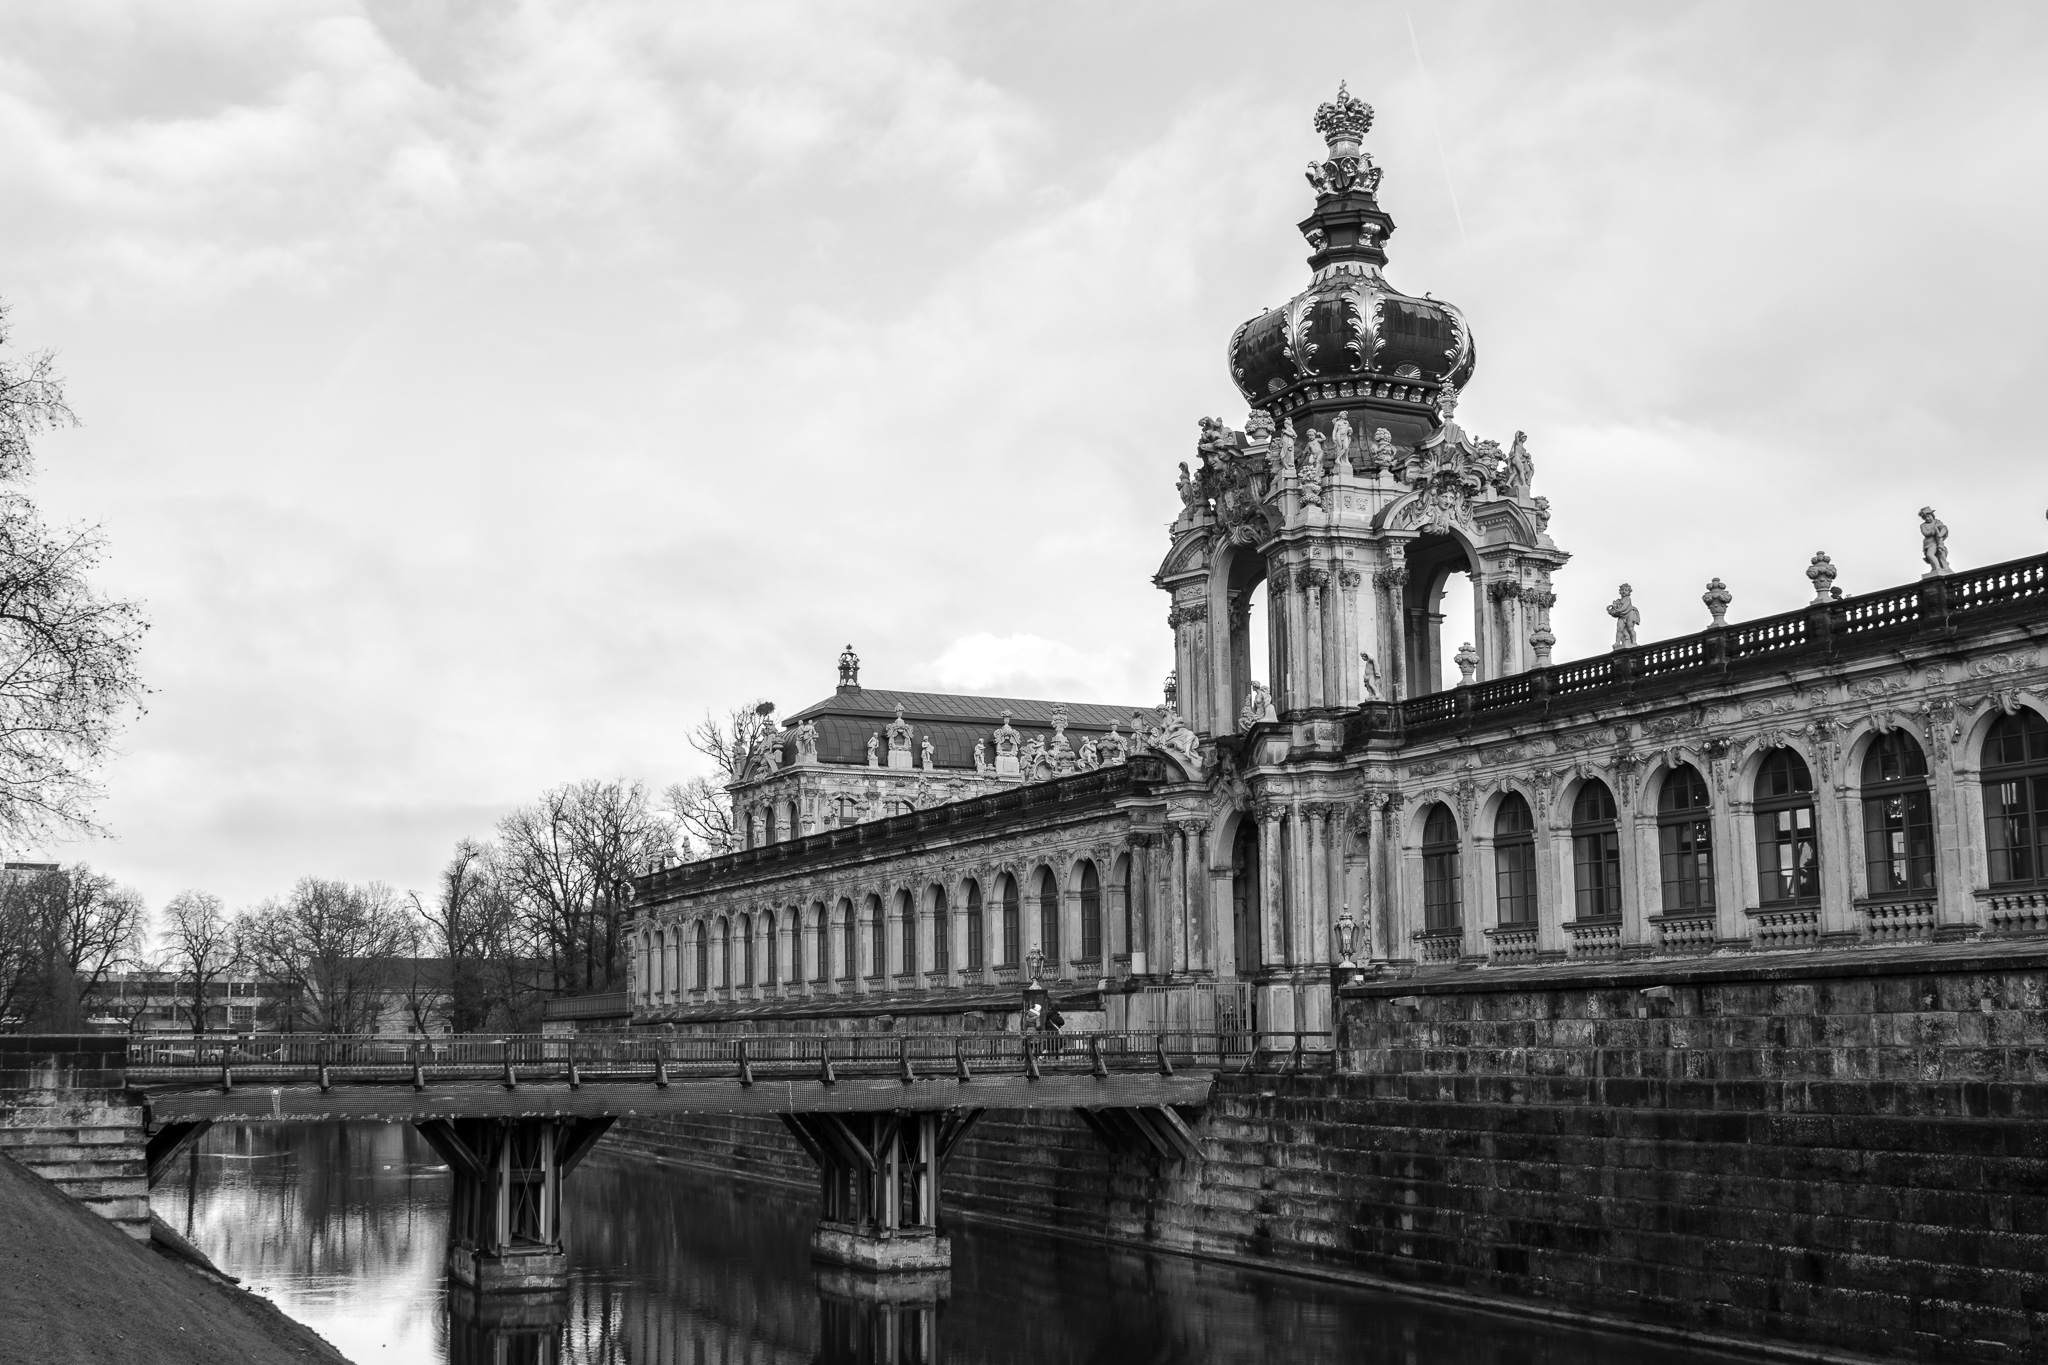 Located on the banks of the Elbe, the Dresden Palace is one of the oldest buildings in the Saxon city. <br>It has been the residence of kings before it was almost destroyed during the bombing of Dresden in 1945 during World War II.